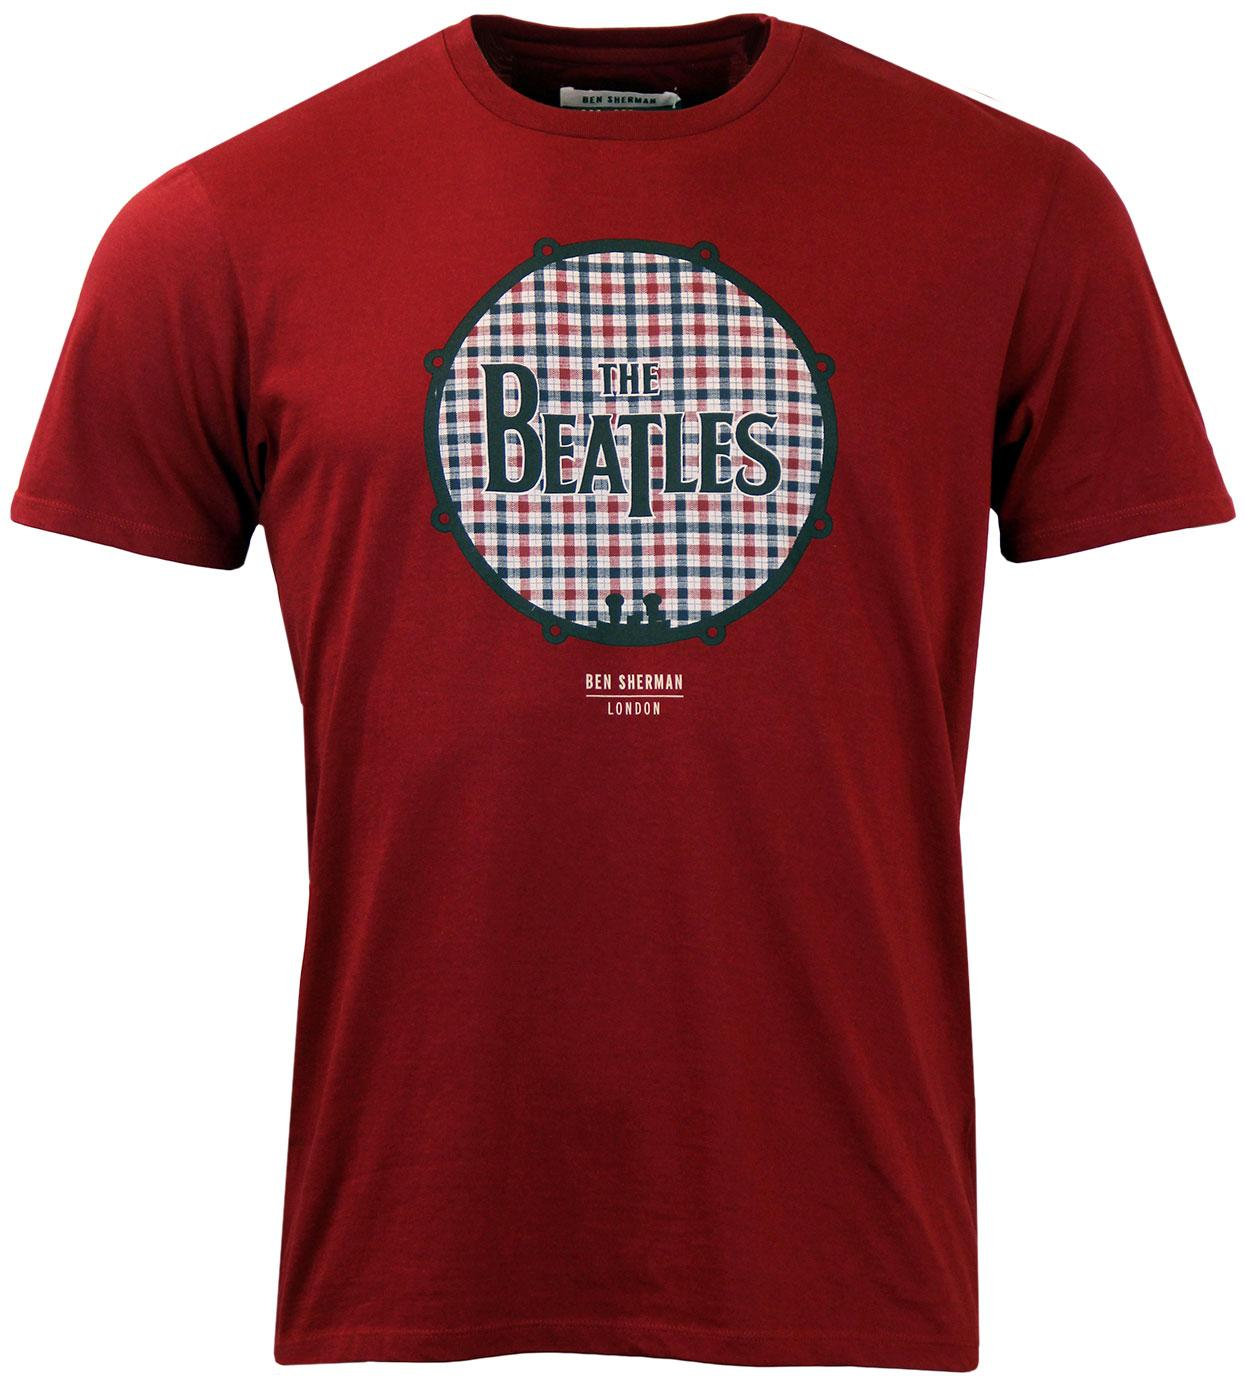 BEN SHERMAN The Beatles Gingham Drum Retro T-shirt